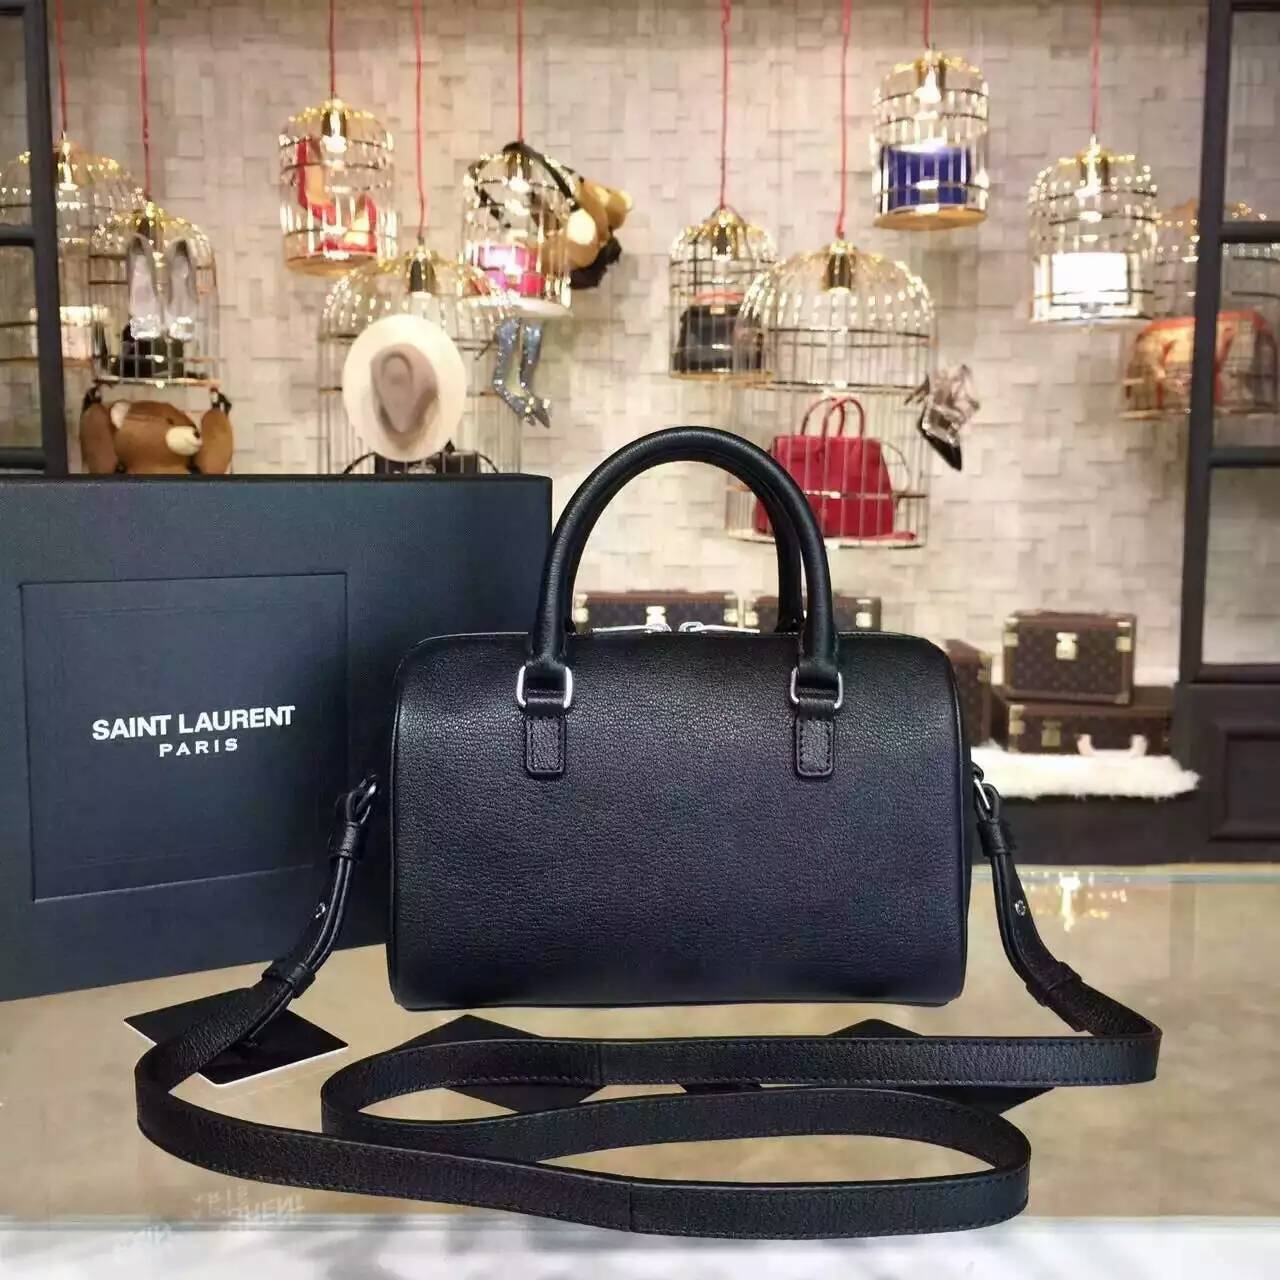 Limited Edition!2015 New Saint Laurent Bag Cheap Sale-Saint Laurent Monogram Cabas Bag in Black Grained Calfskin Leather